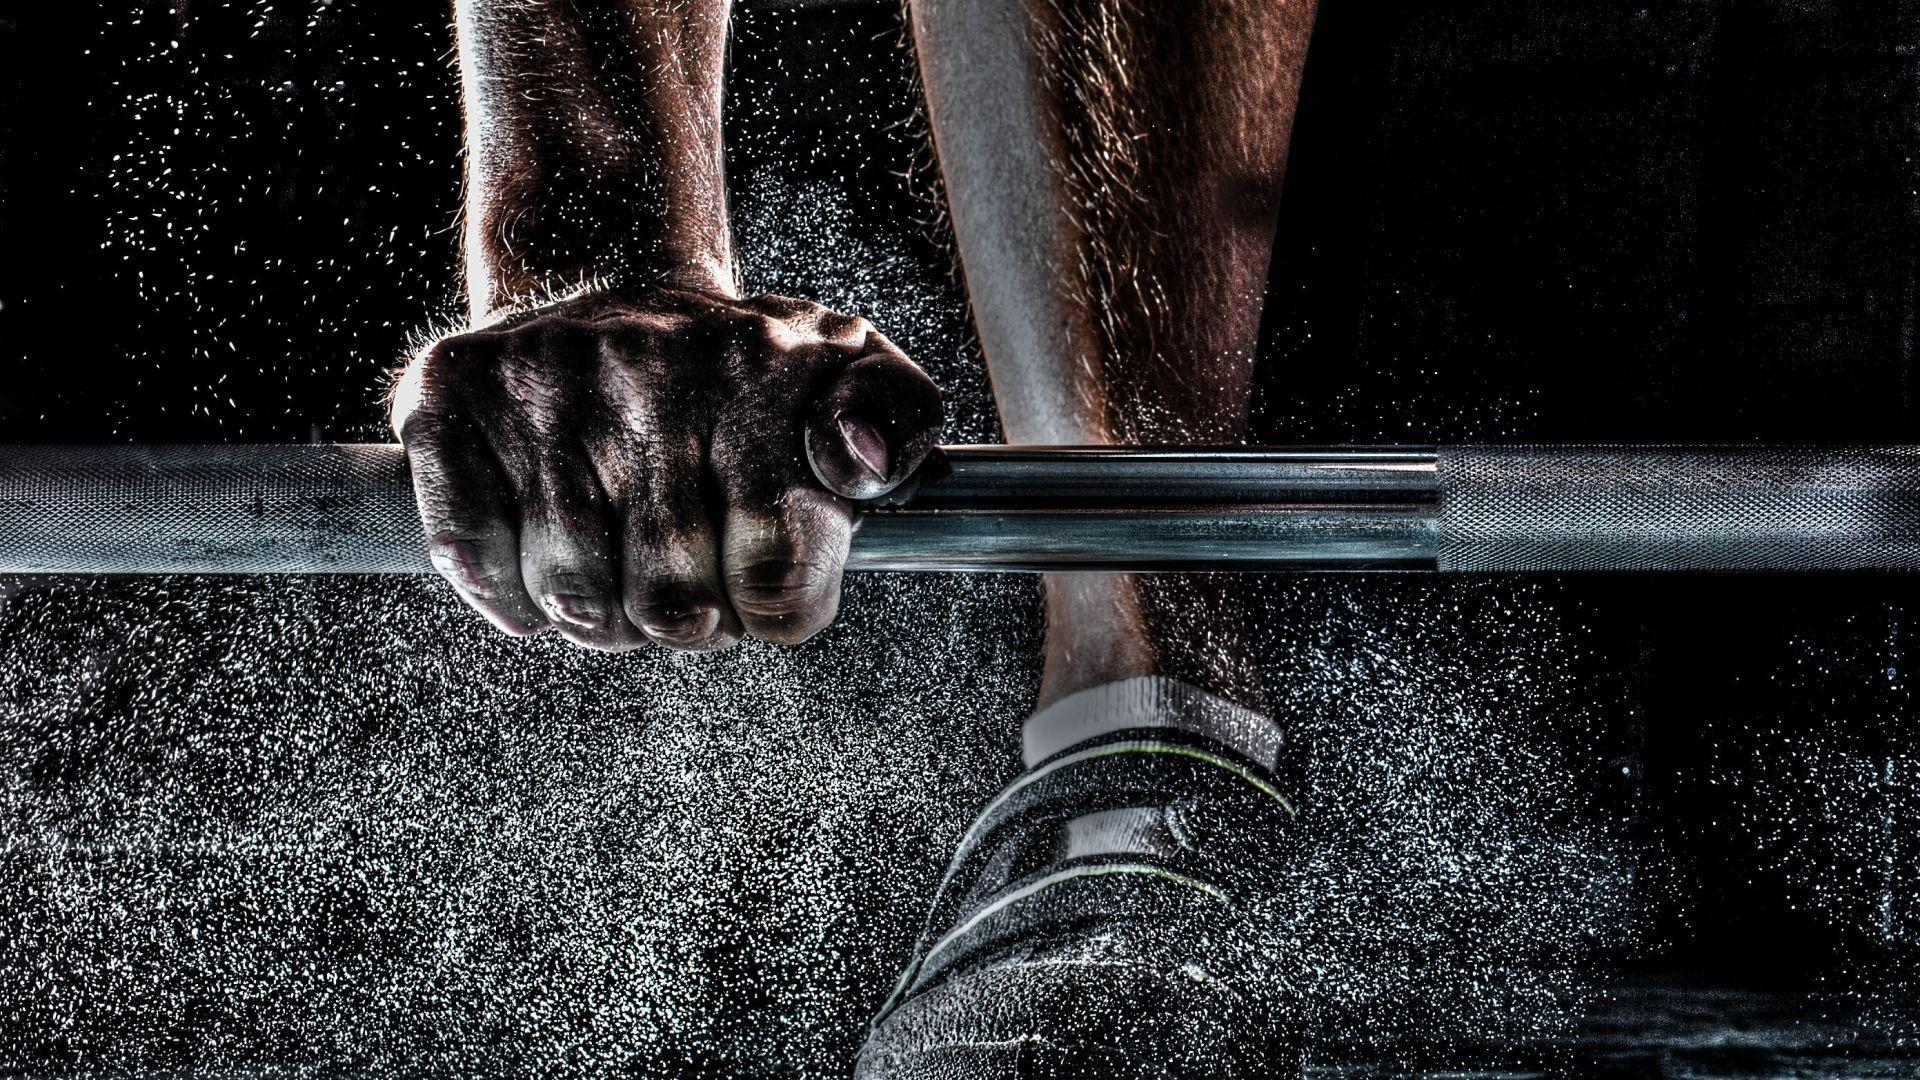 Barbell, hands, feet wallpaper - HD wallpaper download. Wallpapers ...